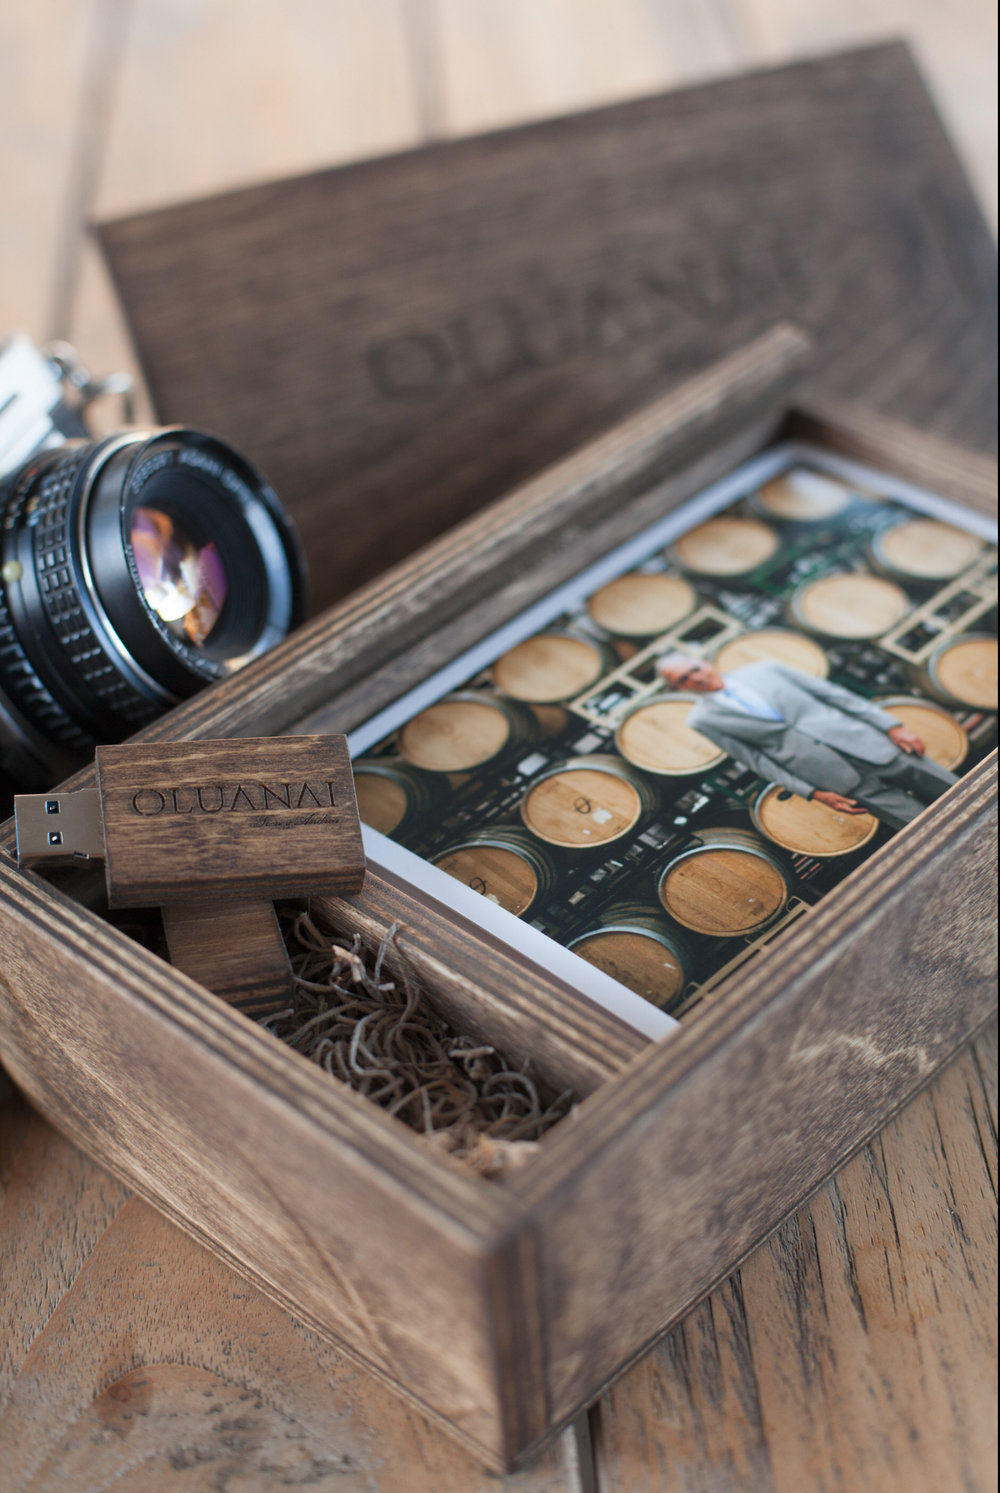 Every couple gets a custom engraved photo box with 150 4x6 prints and USB drive will all their photos. This keepsake is a gorgeous keepsake you will want to display.